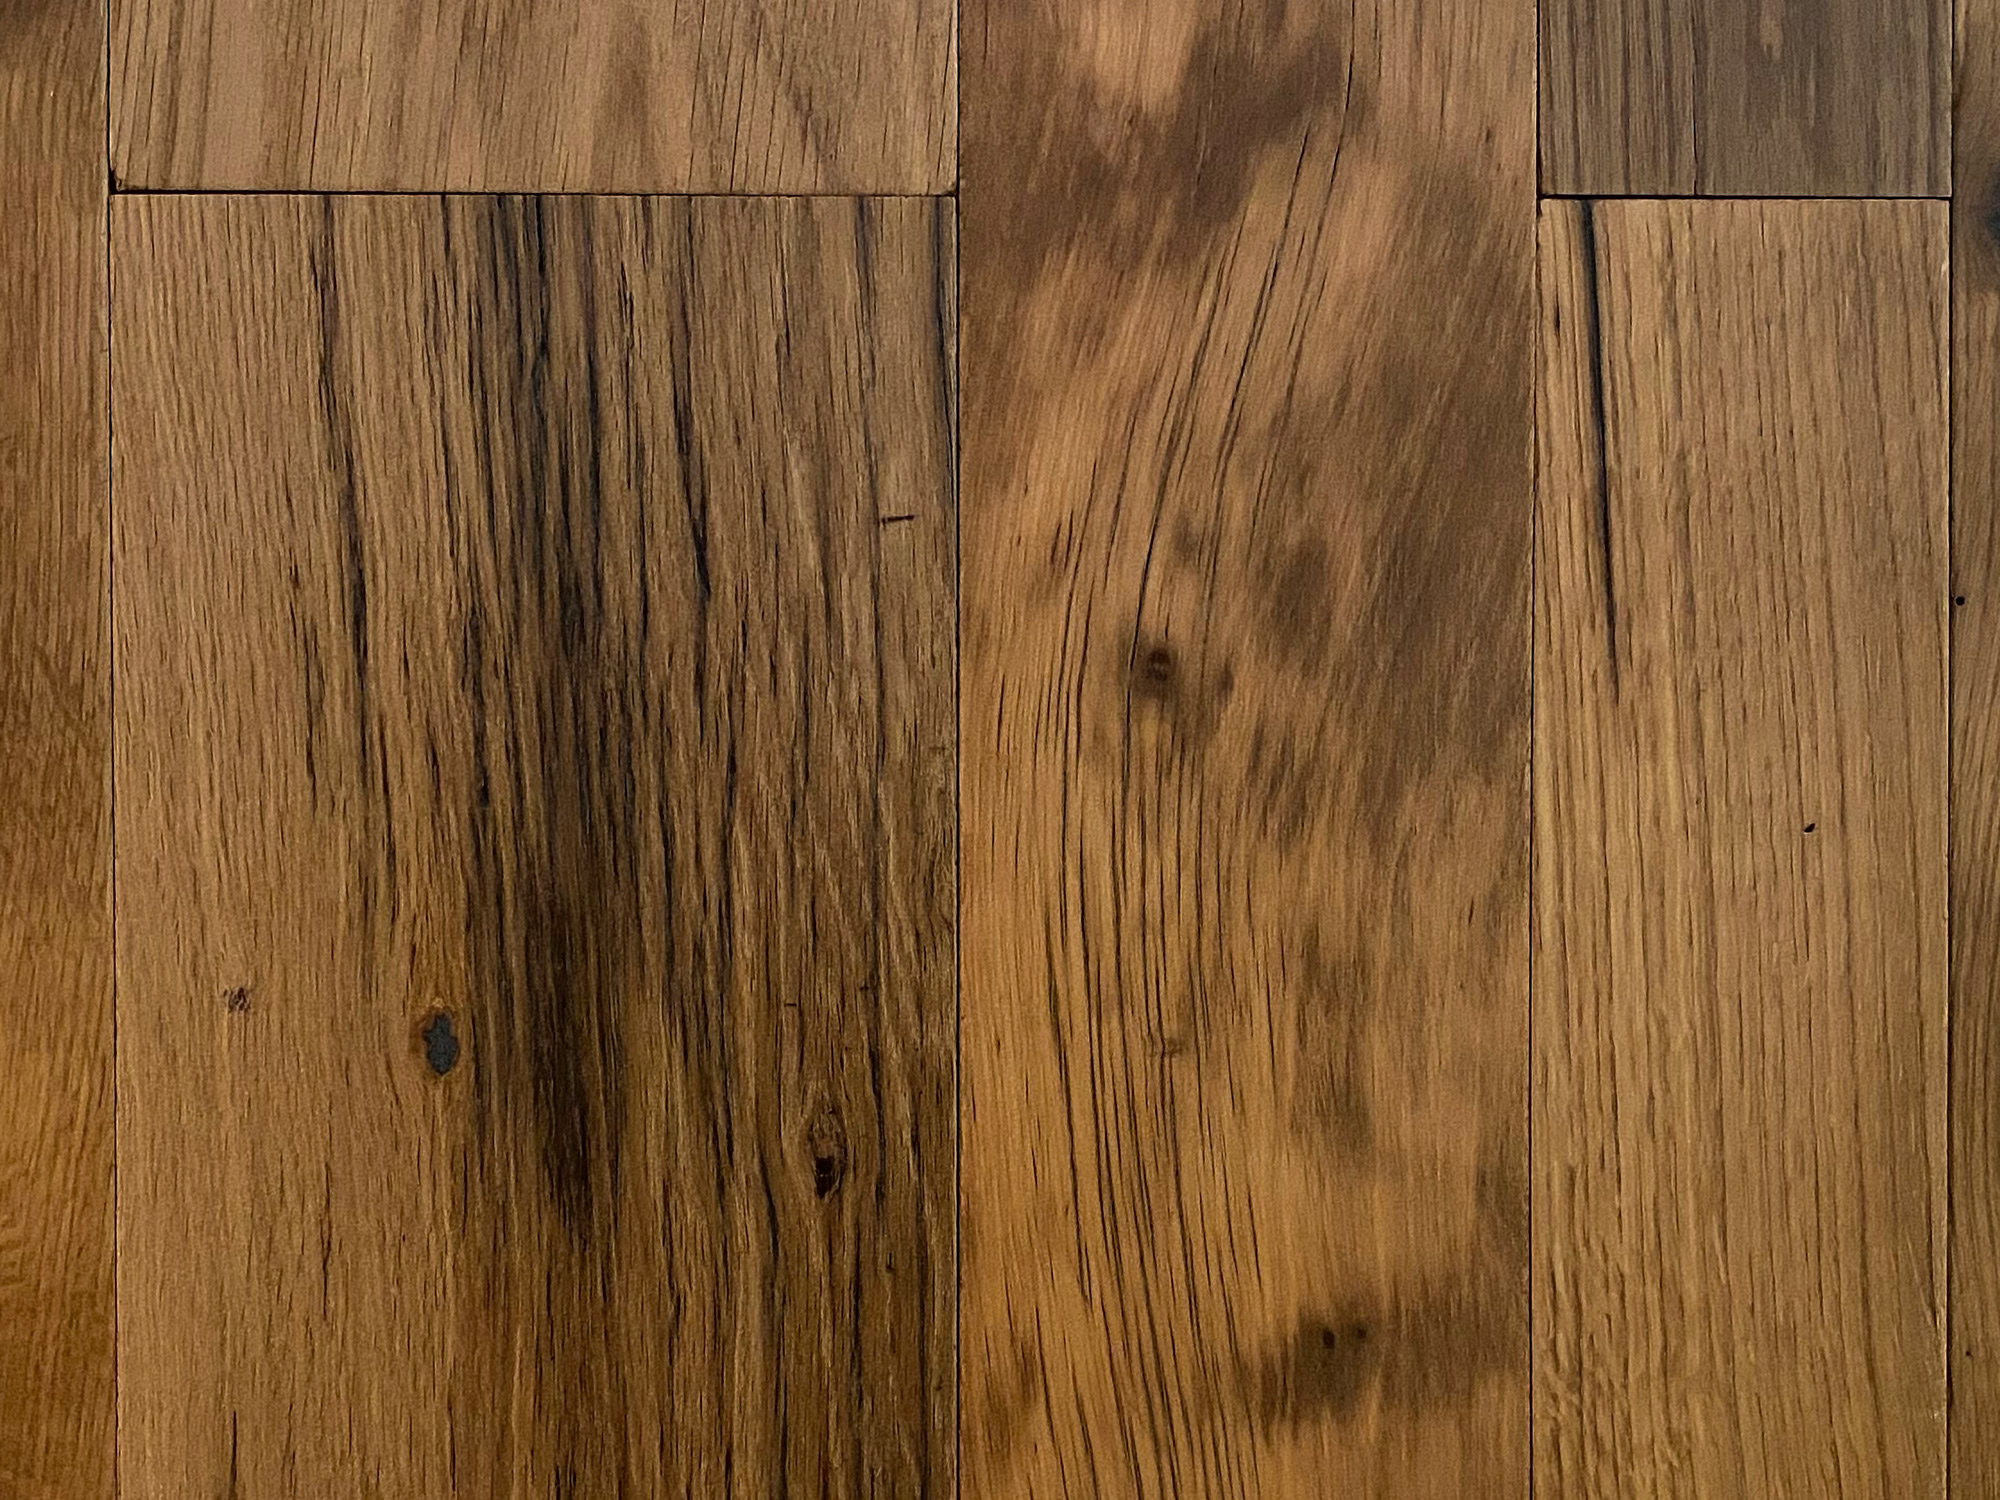 Knots of oak floor board